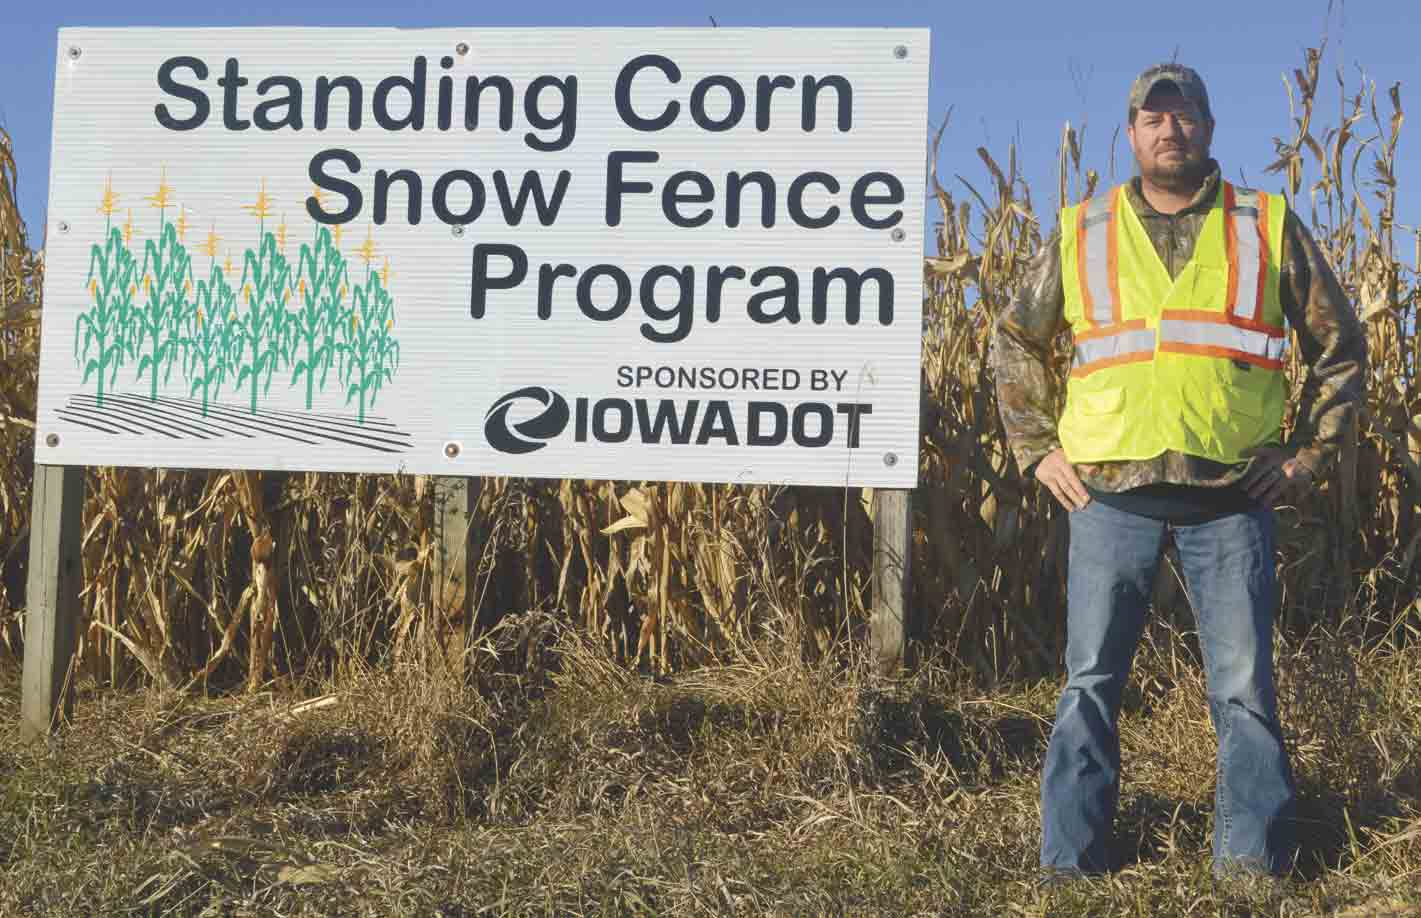 oel Monroe, Iowa Department of Transportation highway maintenance supervisor, points out one of the local standing-corn snow fences utilized throughout northeast Iowa to minimize blowing and drifting snow on adjacent roadways. (Zakary Kriener photo)Iowa DOT promoting standing-...